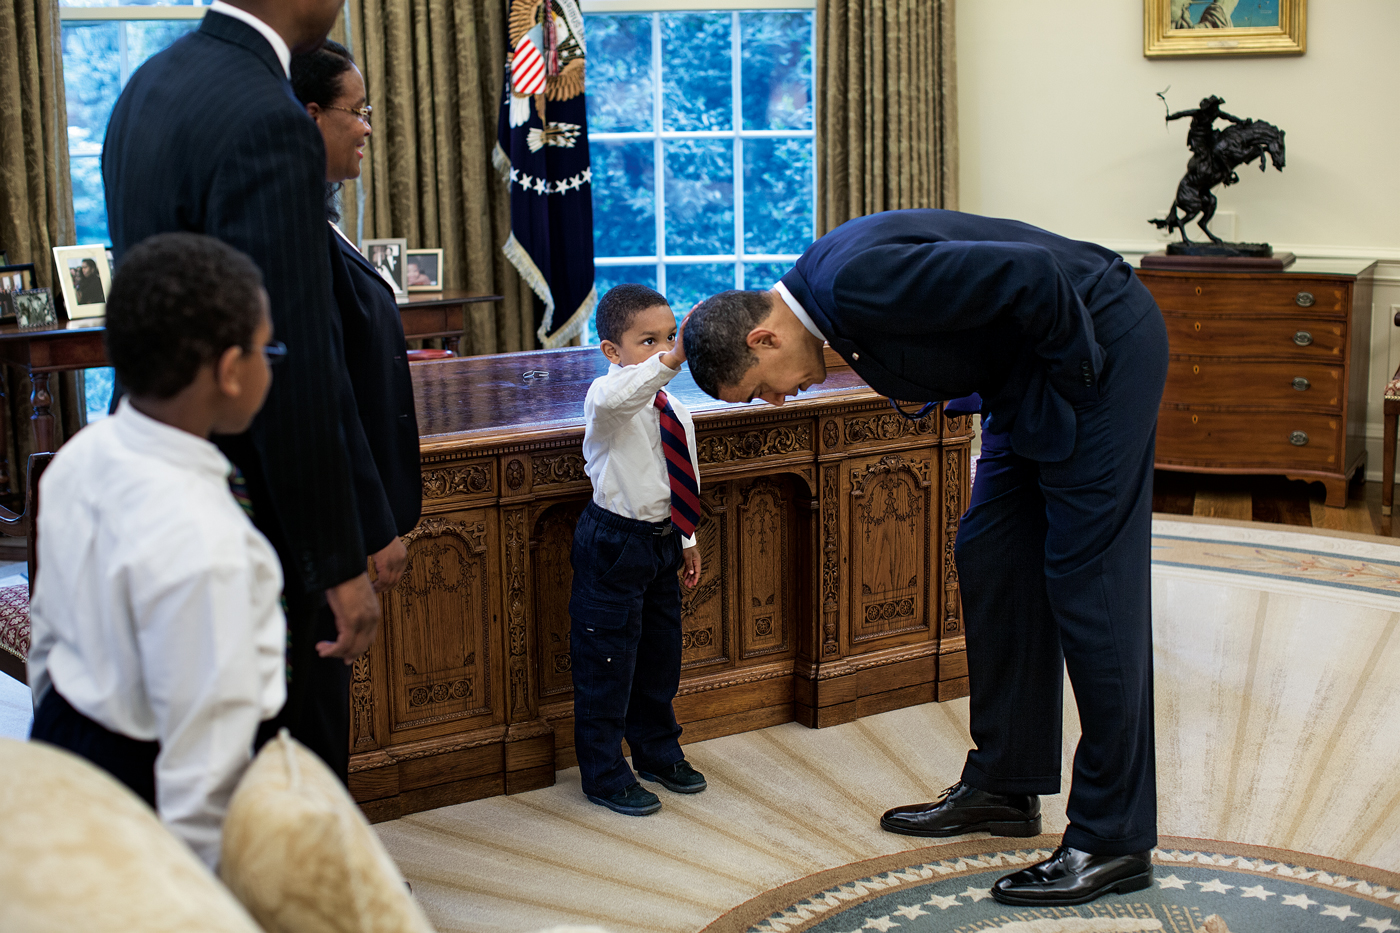 Photograph entitled Hair Like Mine taken by official White House photographer Pete Souza of President Barack Obama bending down so a young African American boy can touch his head.